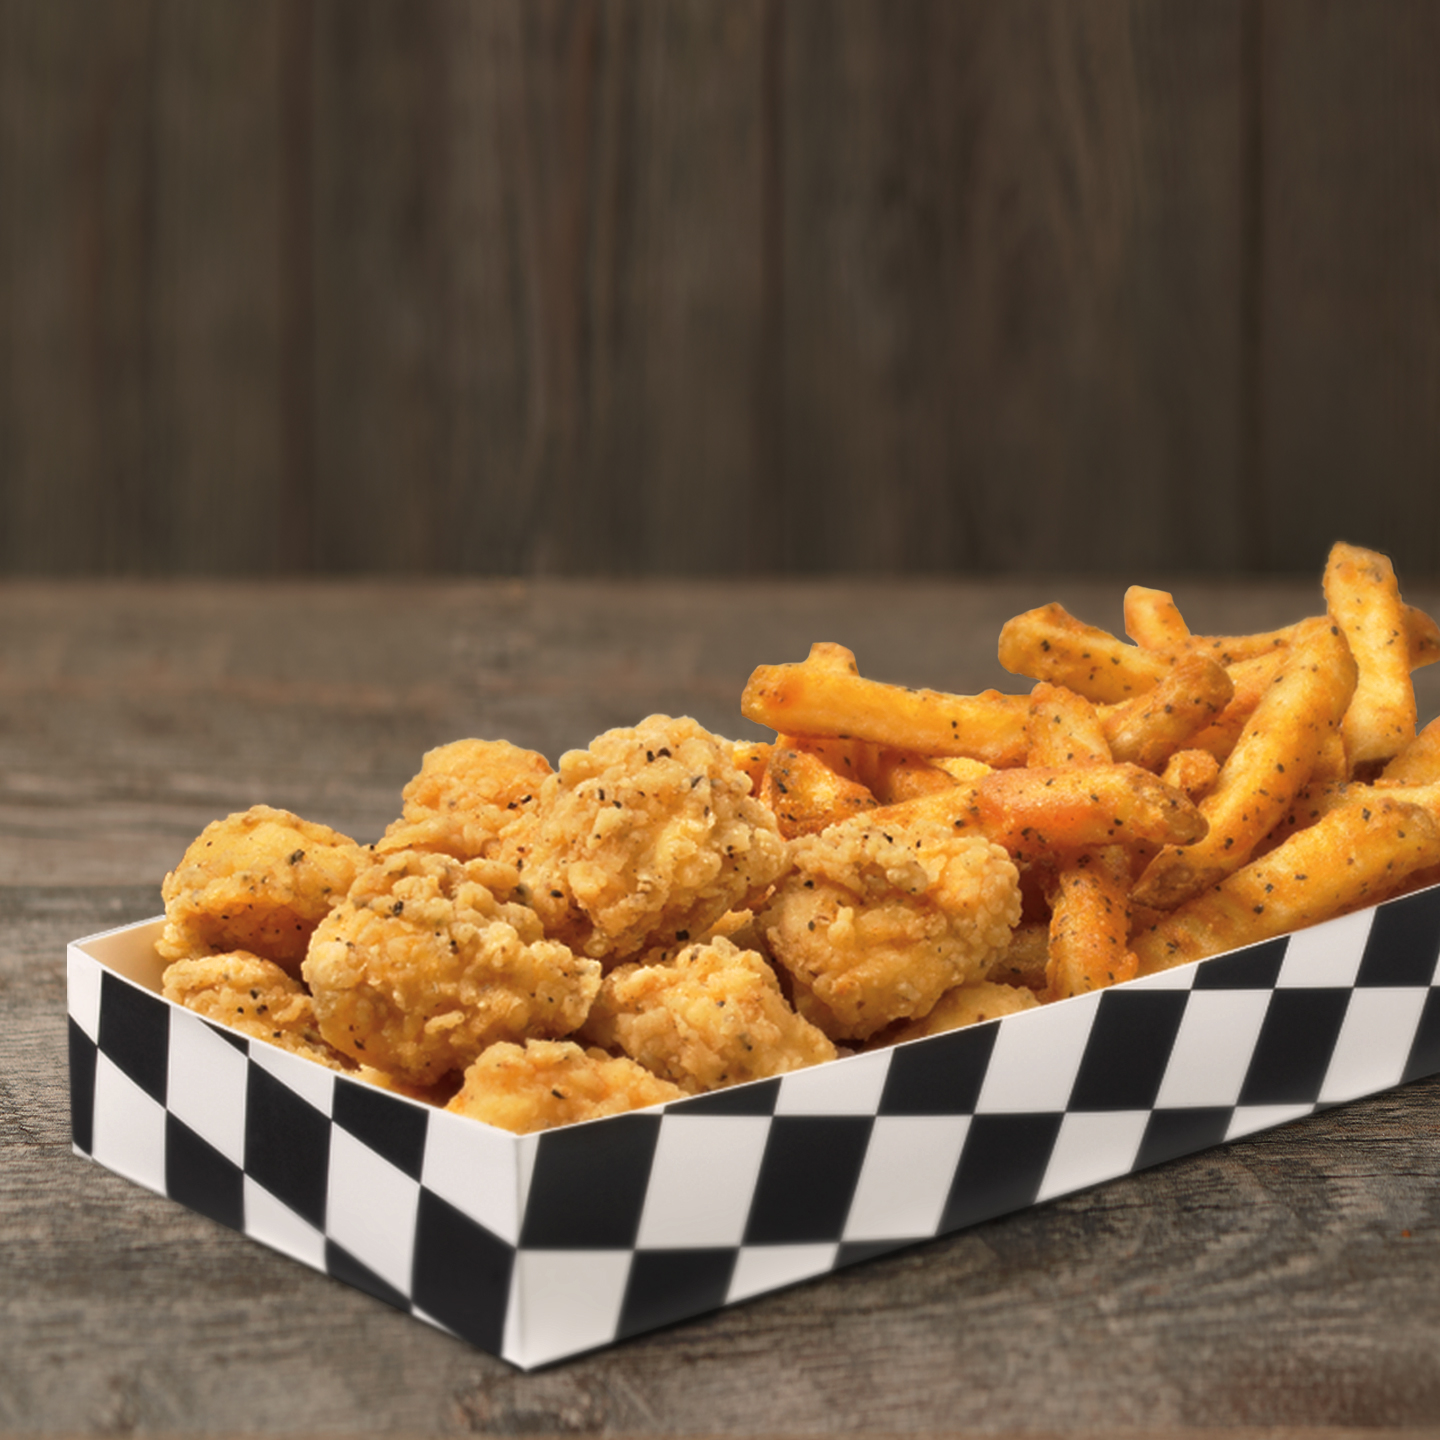 After the very first one of these habit-forming, crispy, juicy, perfectly seasoned, all white meat chicken bites, you'll be obsessing over them. Order them by the half pound, or get them in a box with our Famous Seasoned Fries.